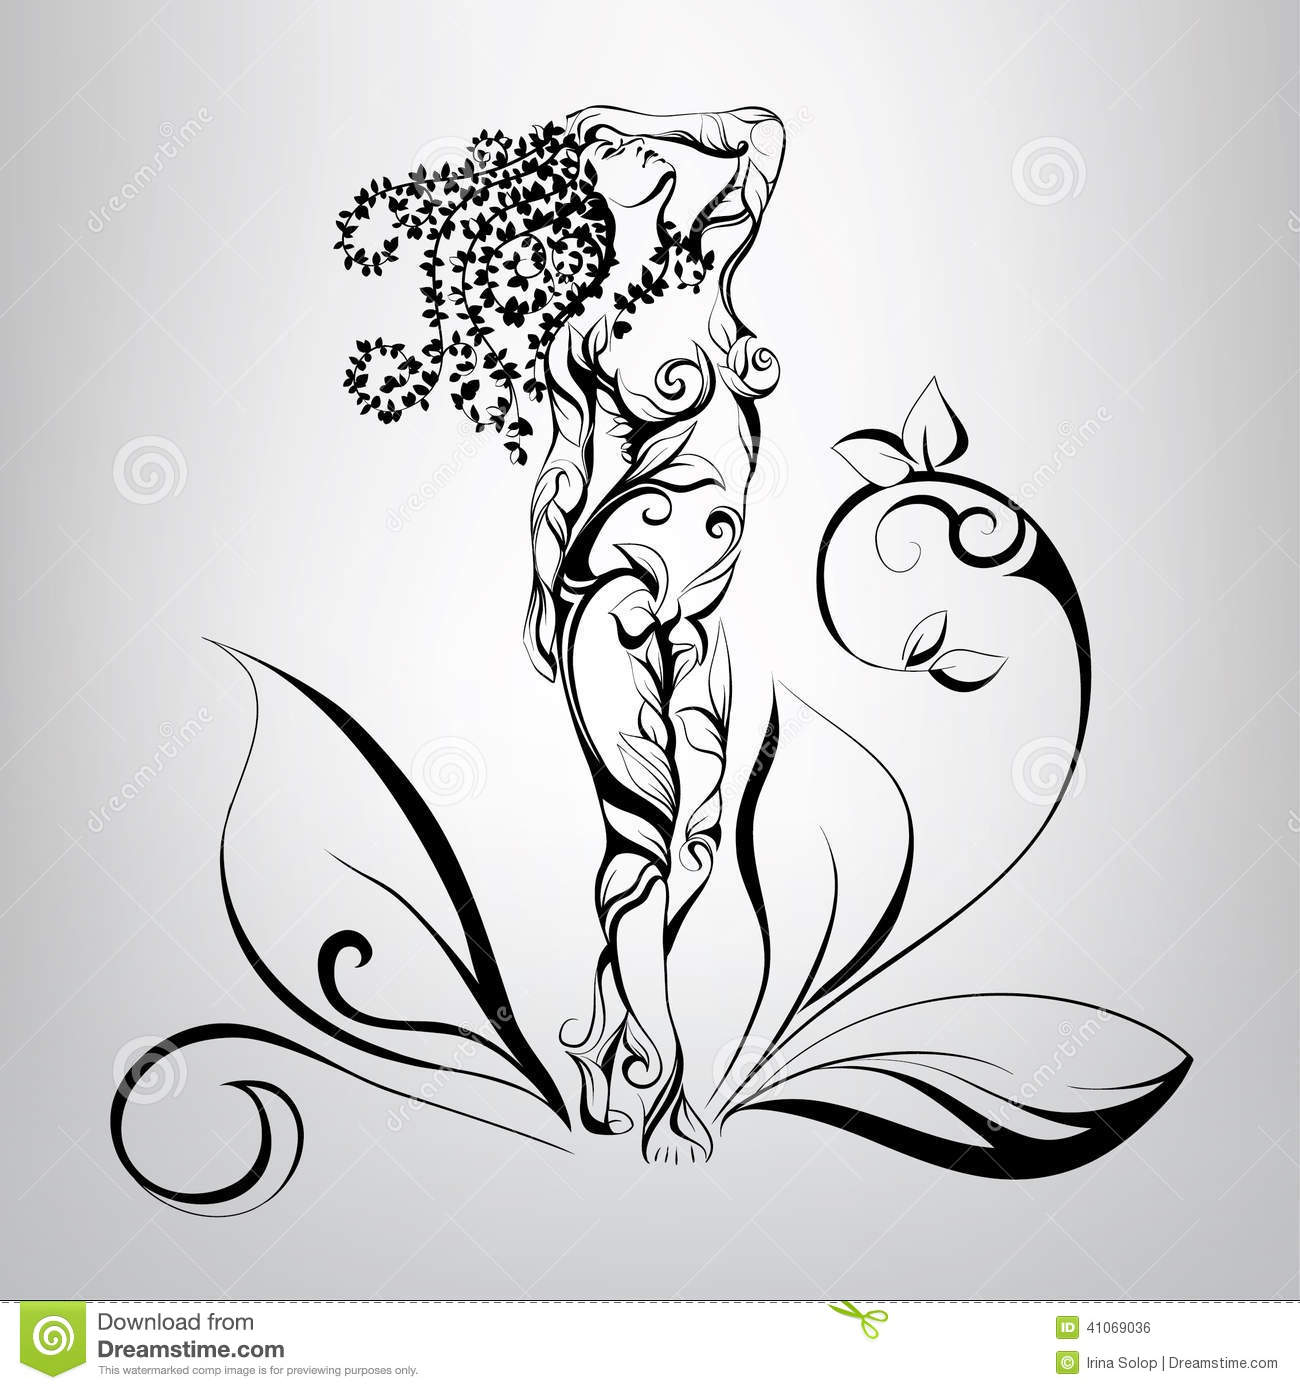 Girl with hair of vegetation vector illustration stock vector illustration of luxury - Dessin vegetation ...